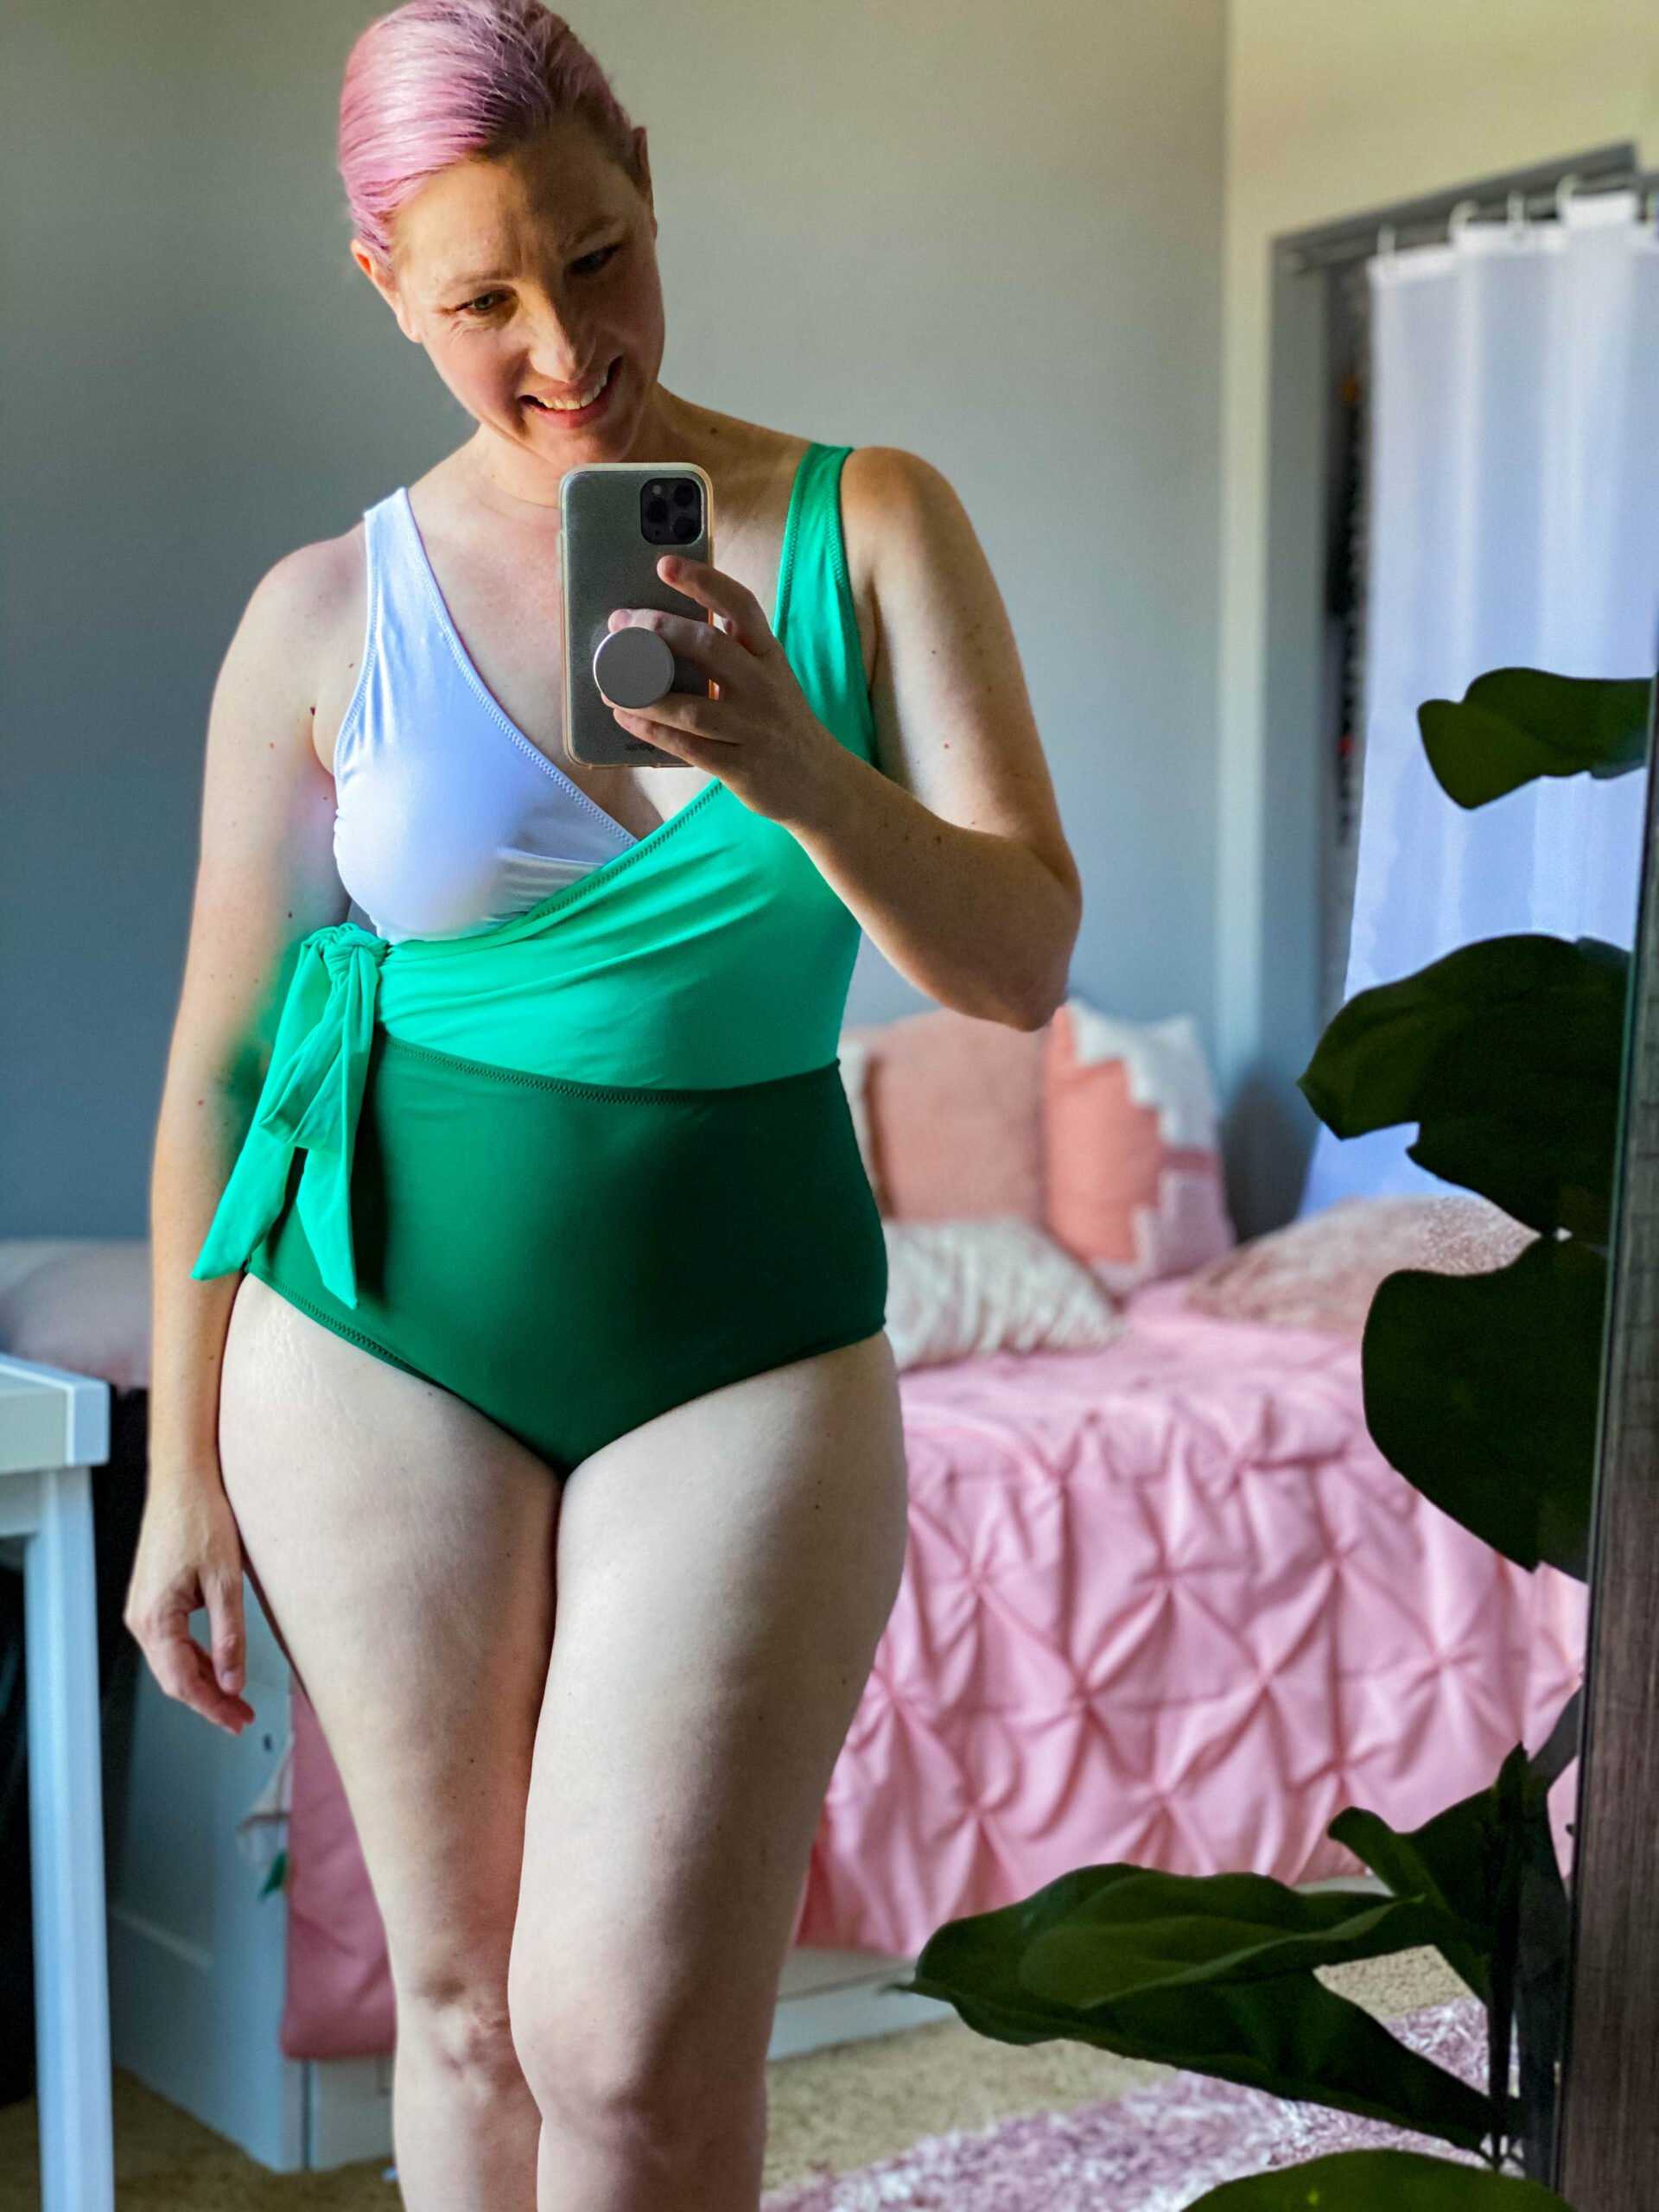 colorblocked swimsuit: isn't this wrap suit adorable?